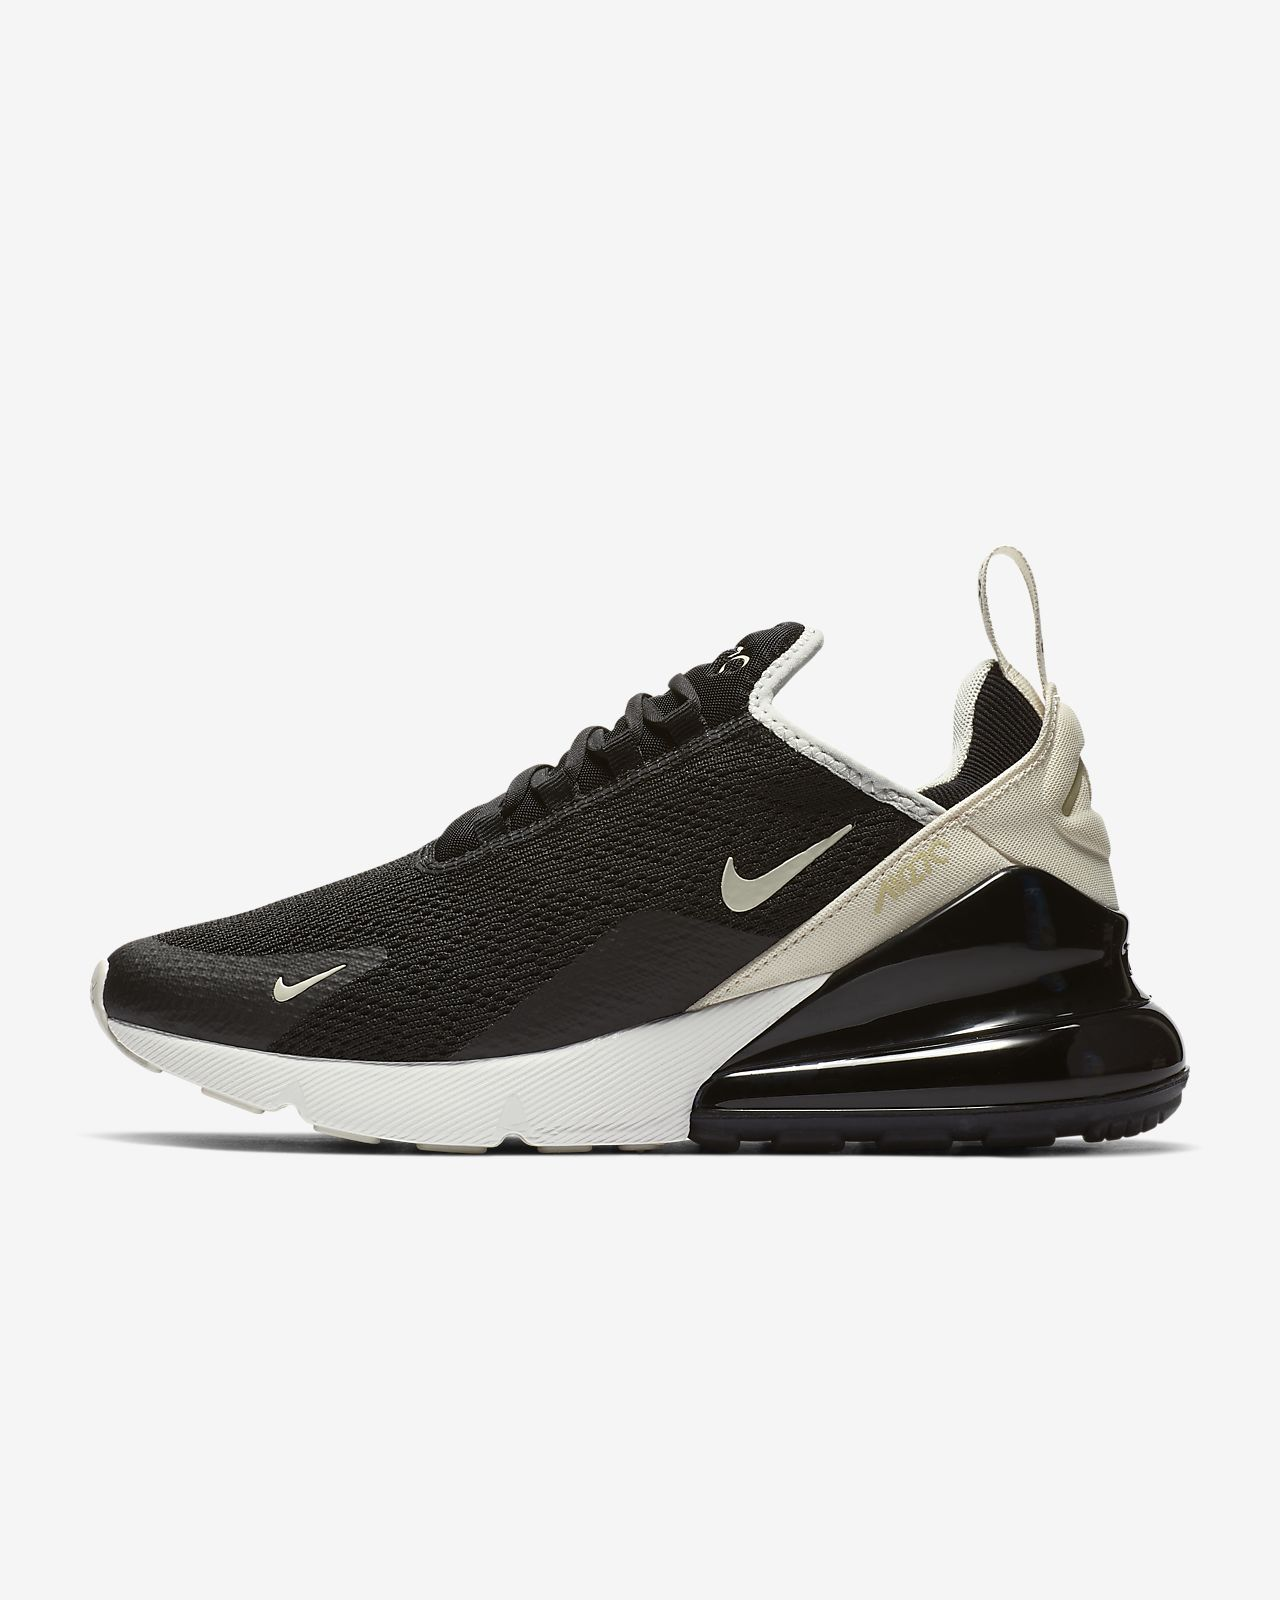 cheaper c1ad8 3e462 Nike Air Max 270